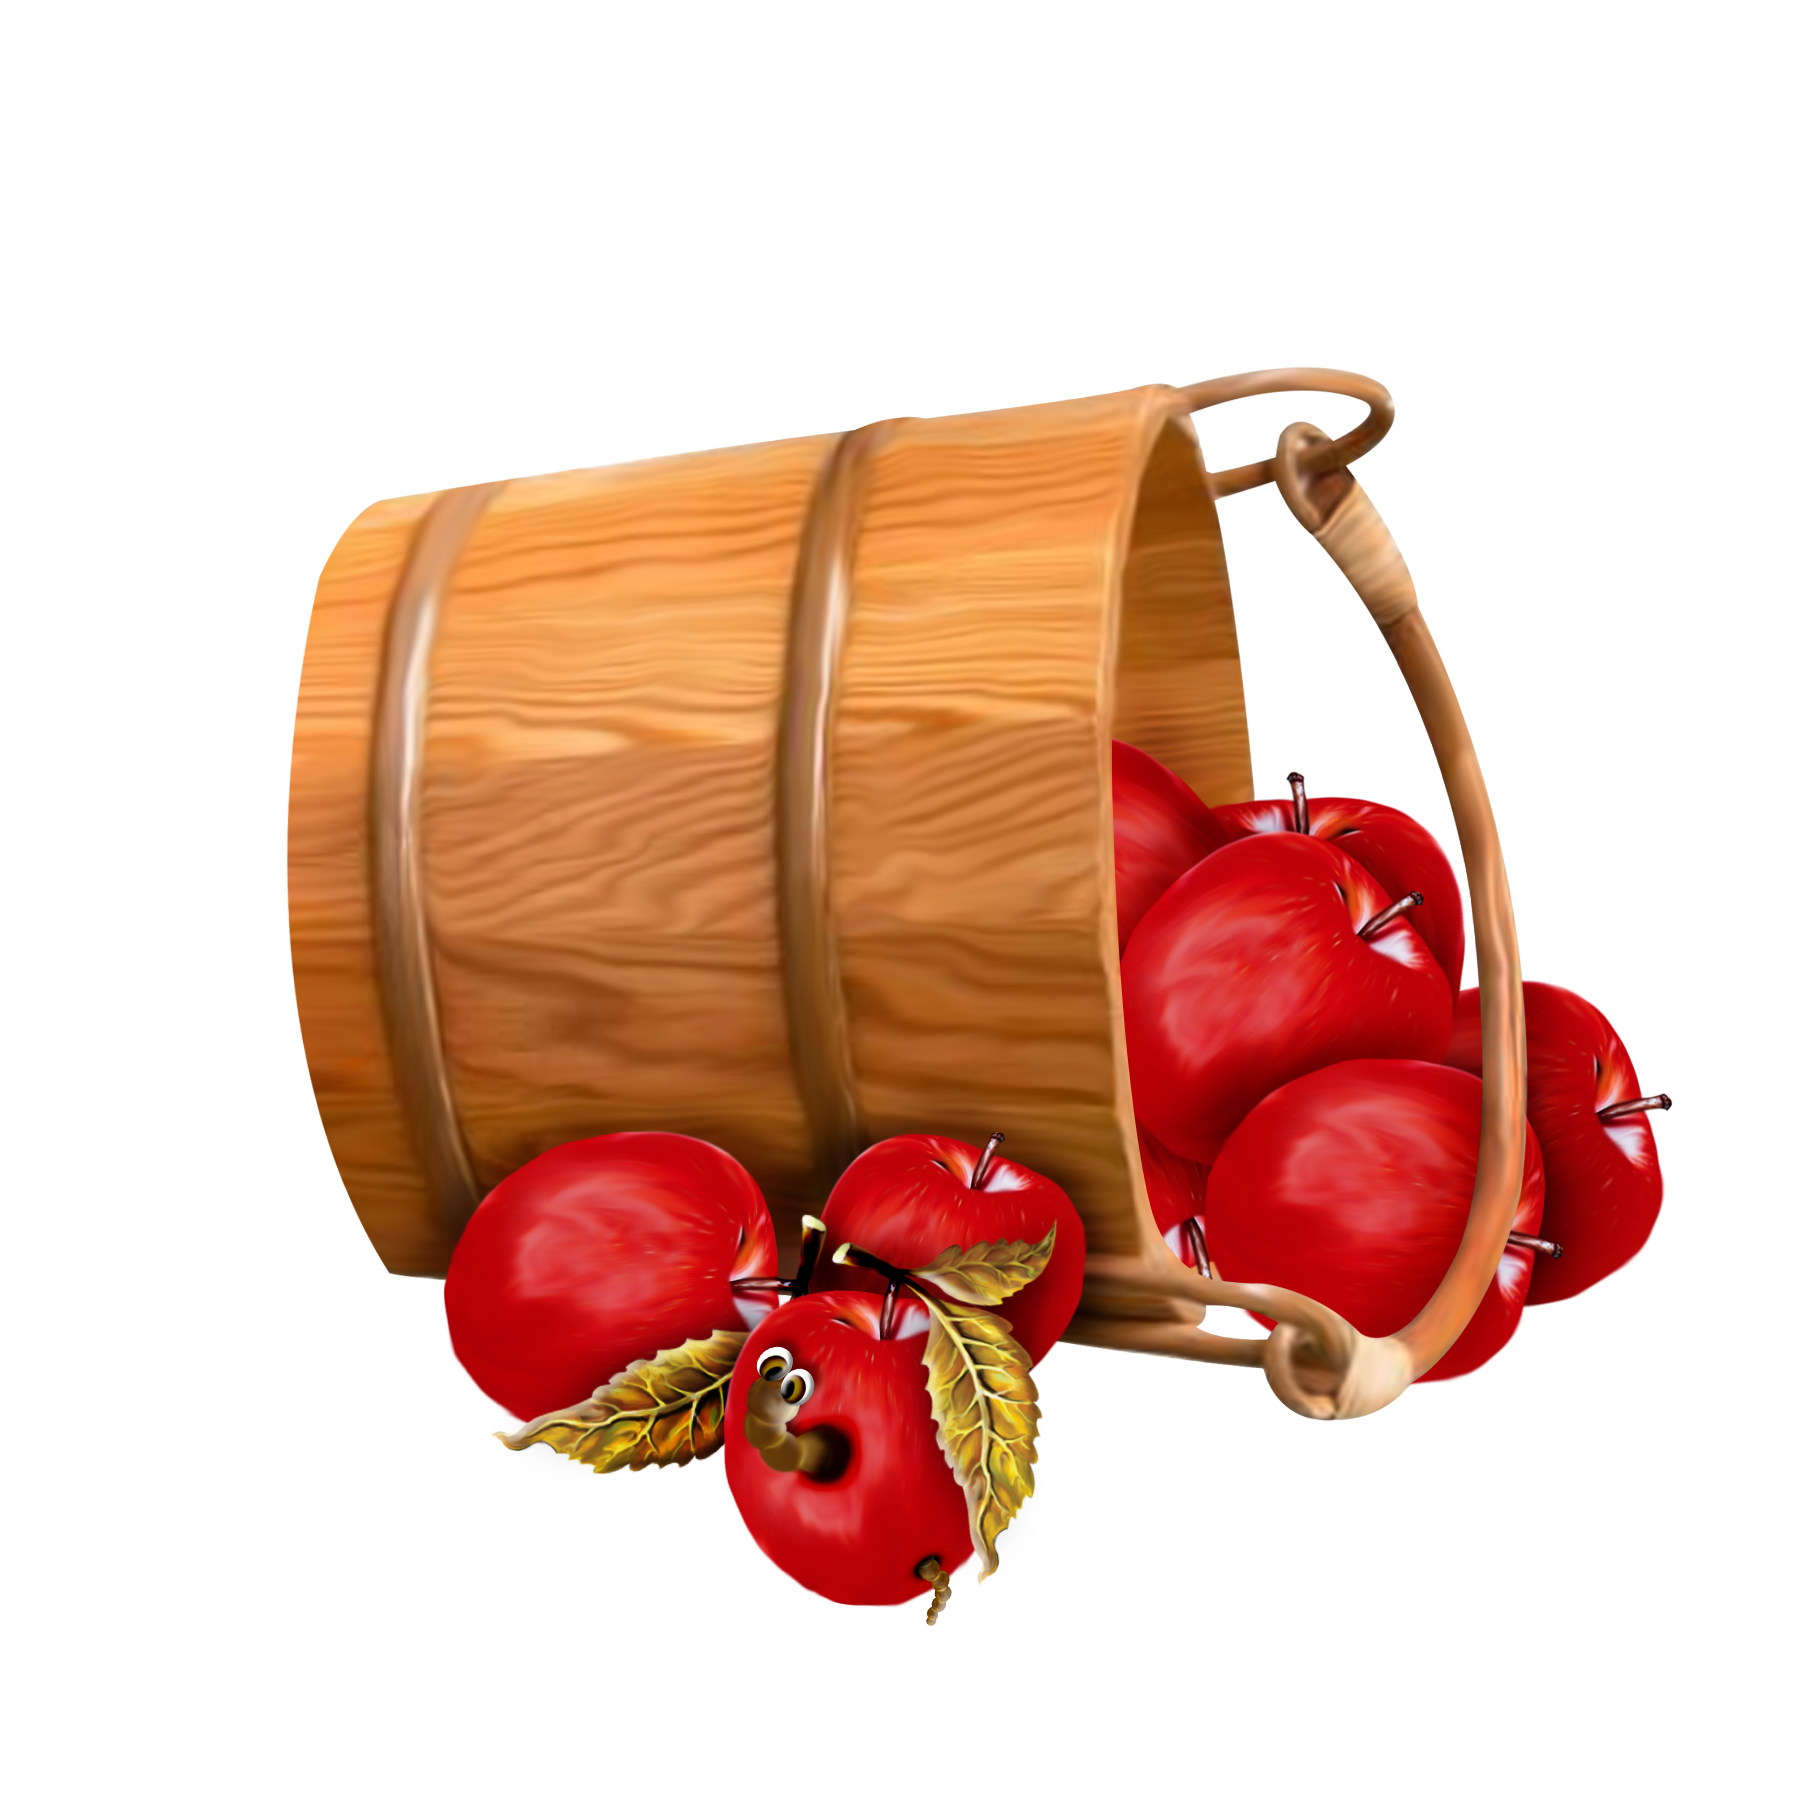 Bucket with Apples Transparent Clipart | AppleCart | Pinterest ...